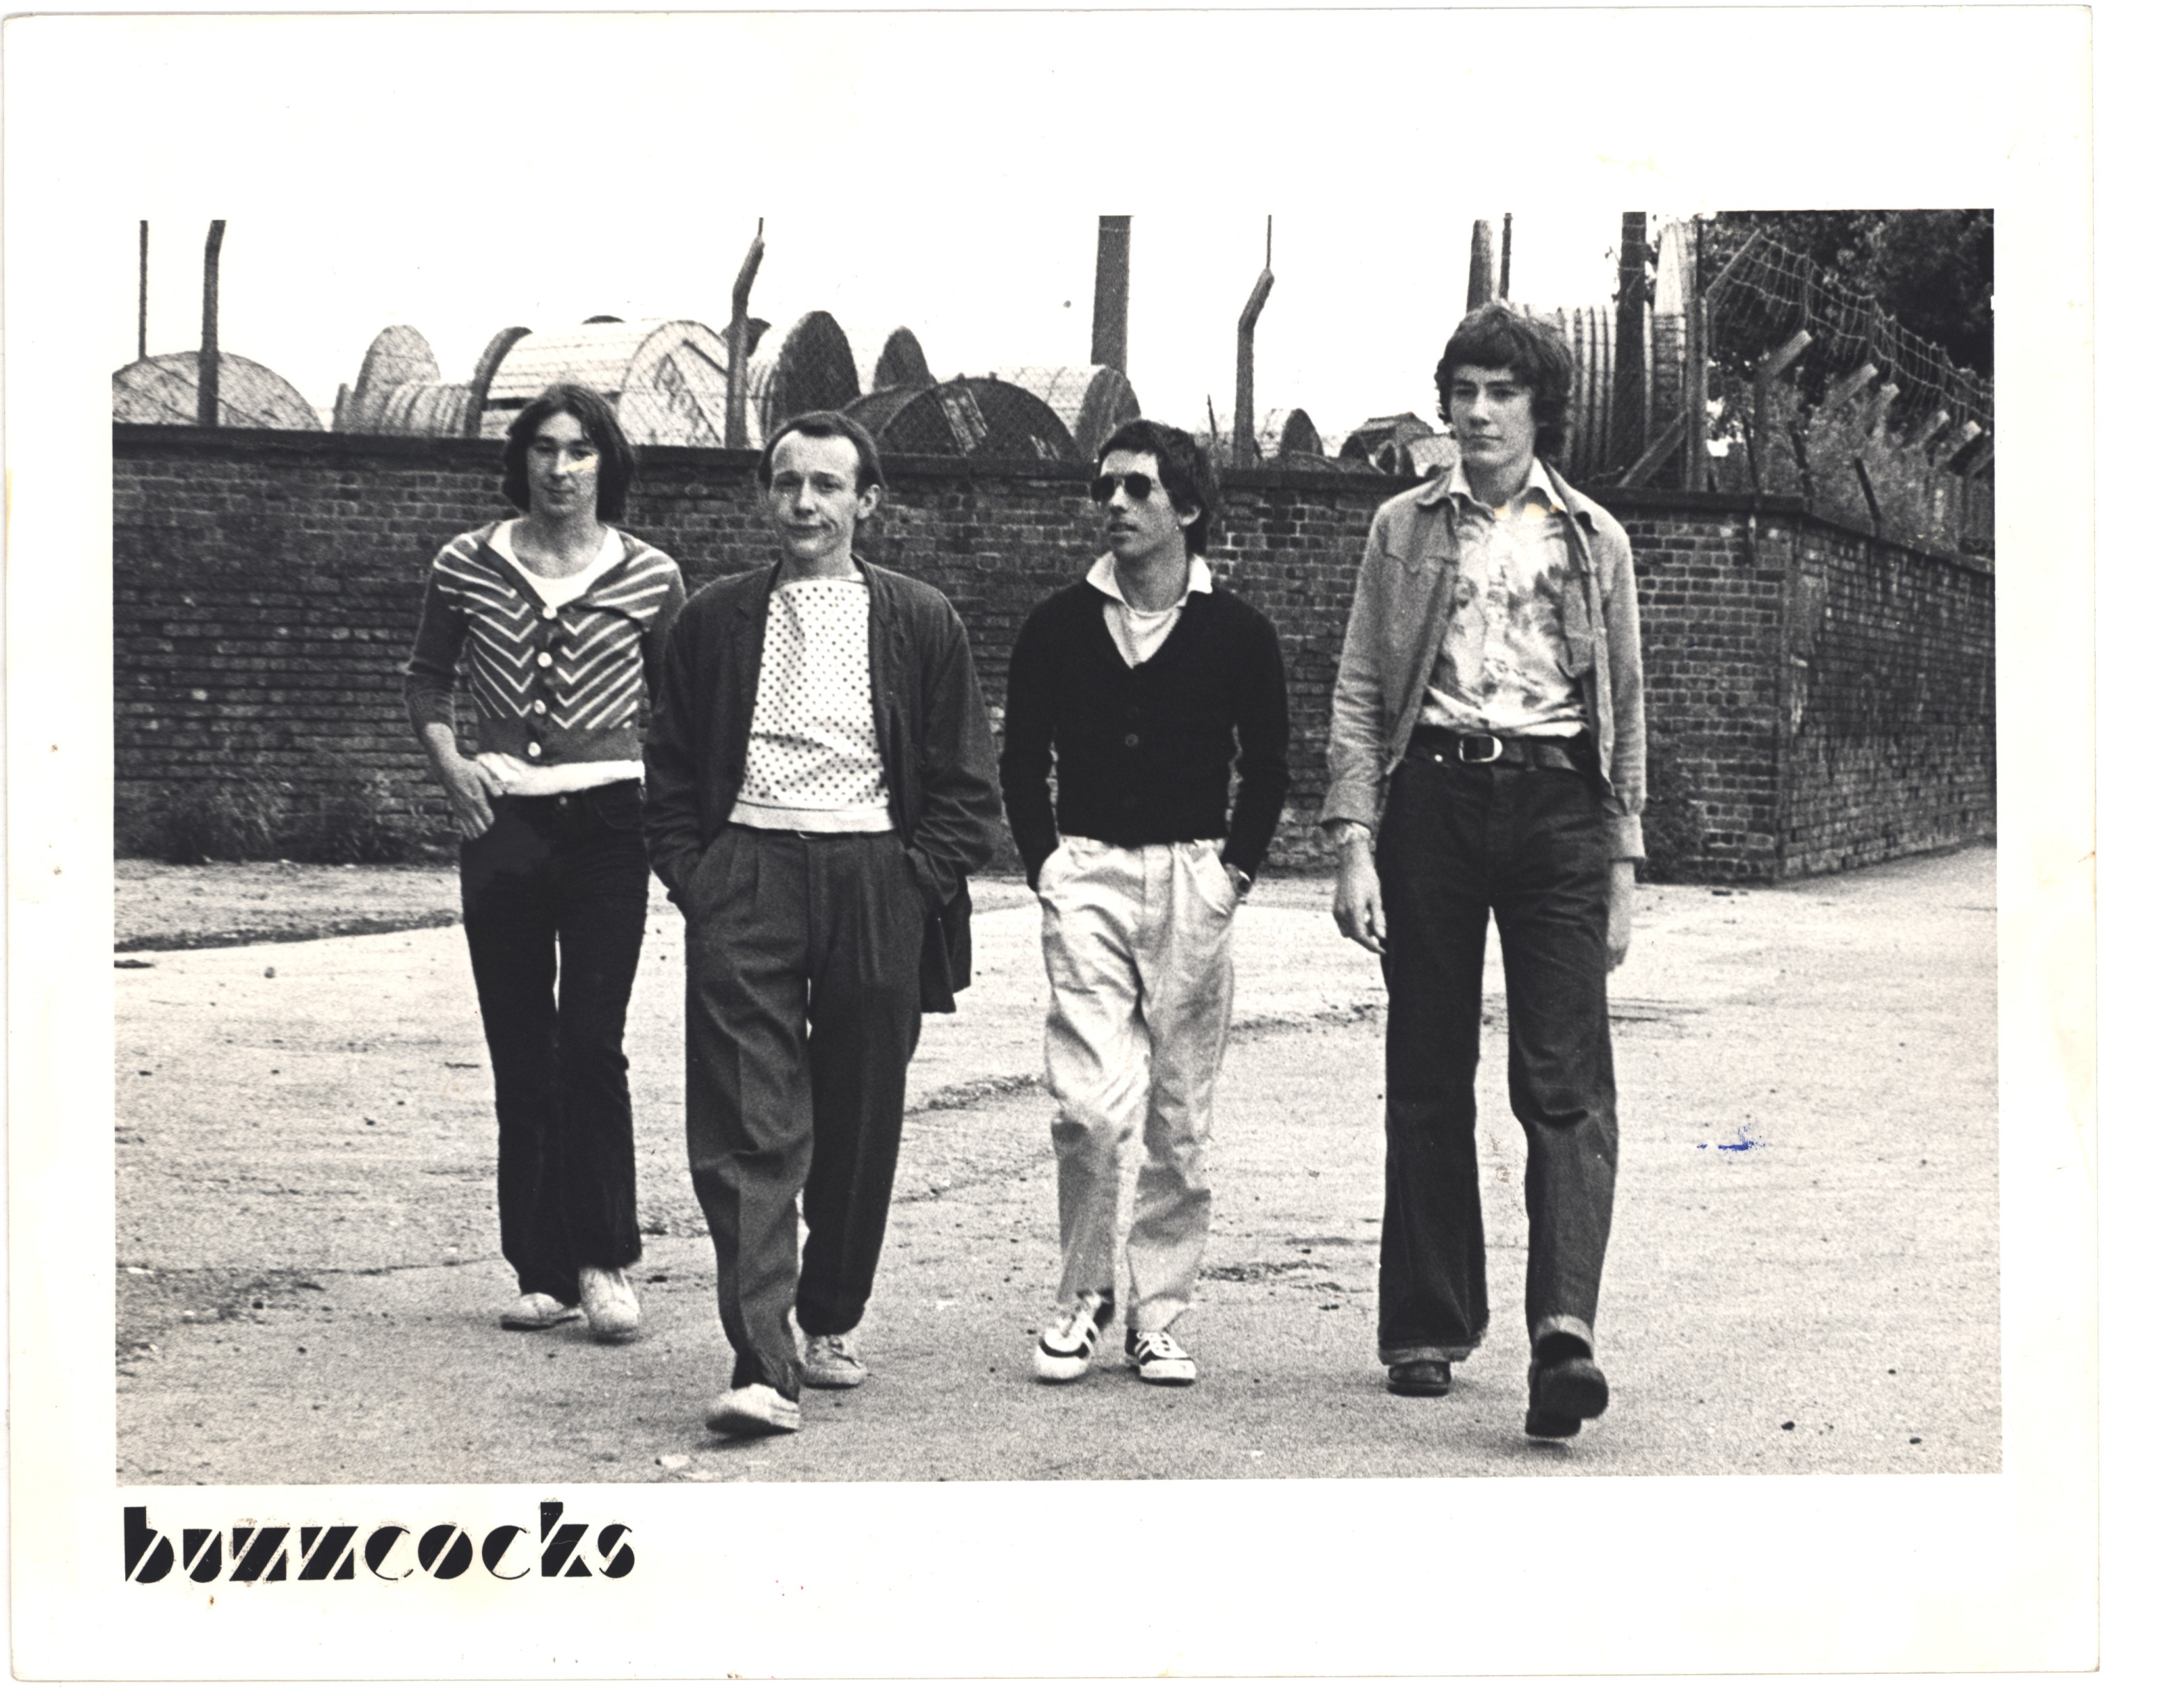 Photograph of Buzzcocks (1976). From England's Dreaming: The Jon Savage Archive held at Liverpool John Moores University